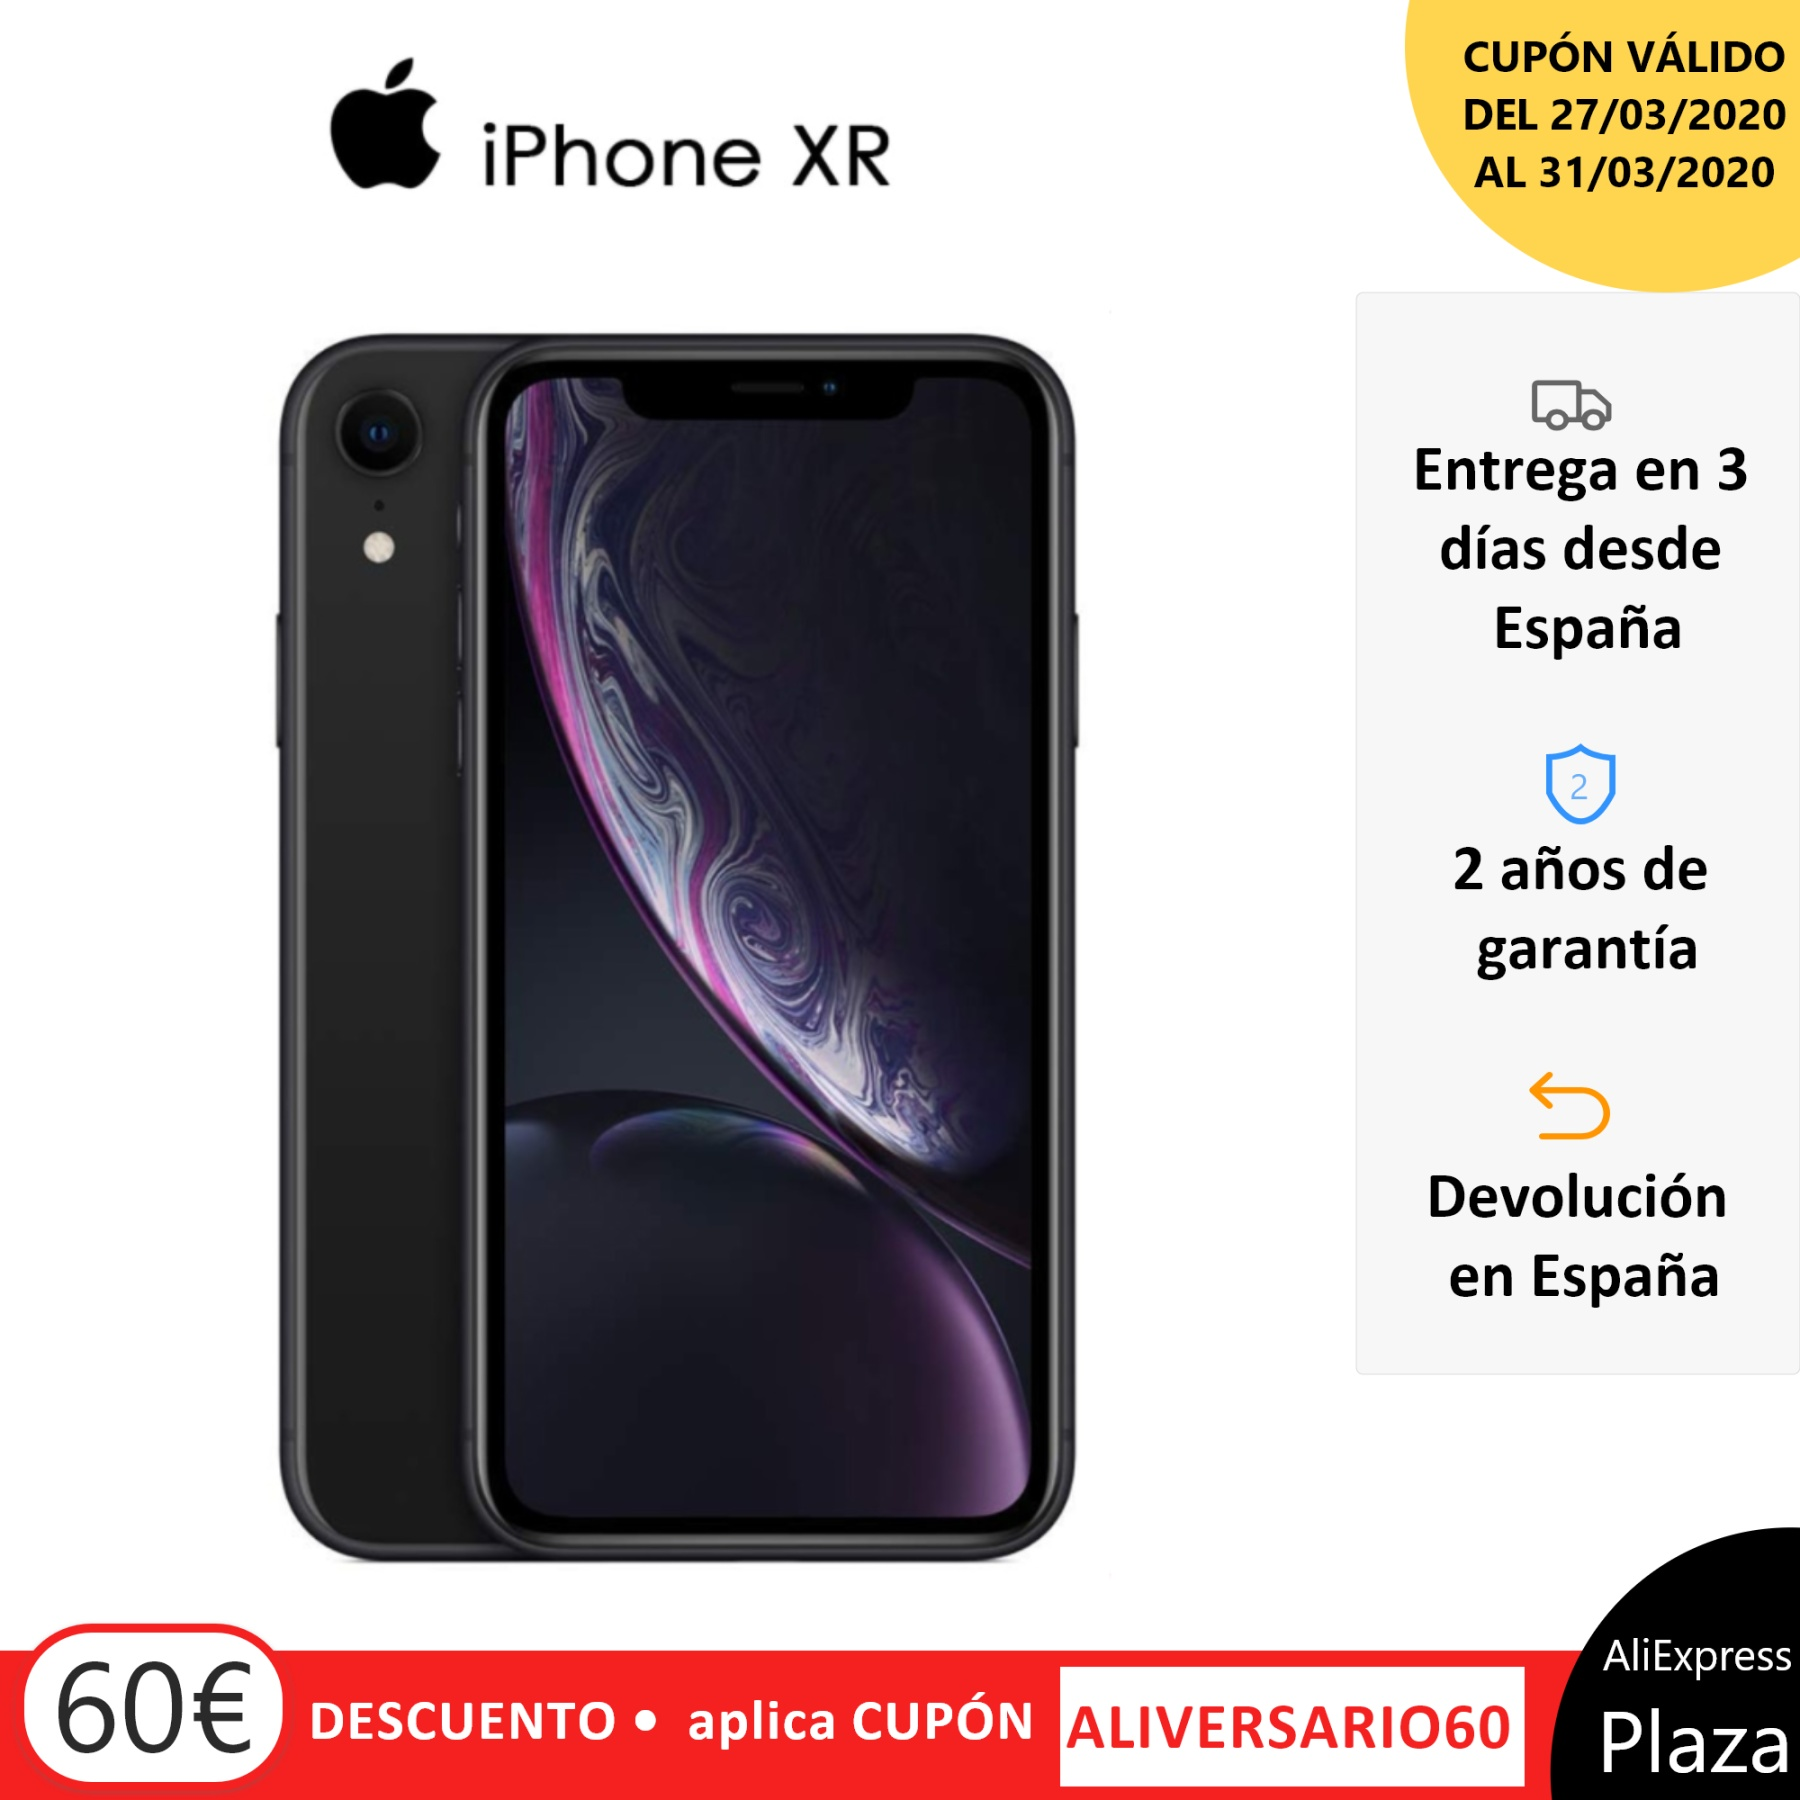 Smartphone Apple IPhone XR, 64 GB, 3 GB RAM, Band 4G/LTE/Wi-Fi, 15,5 Cm (Pantalla 6.1